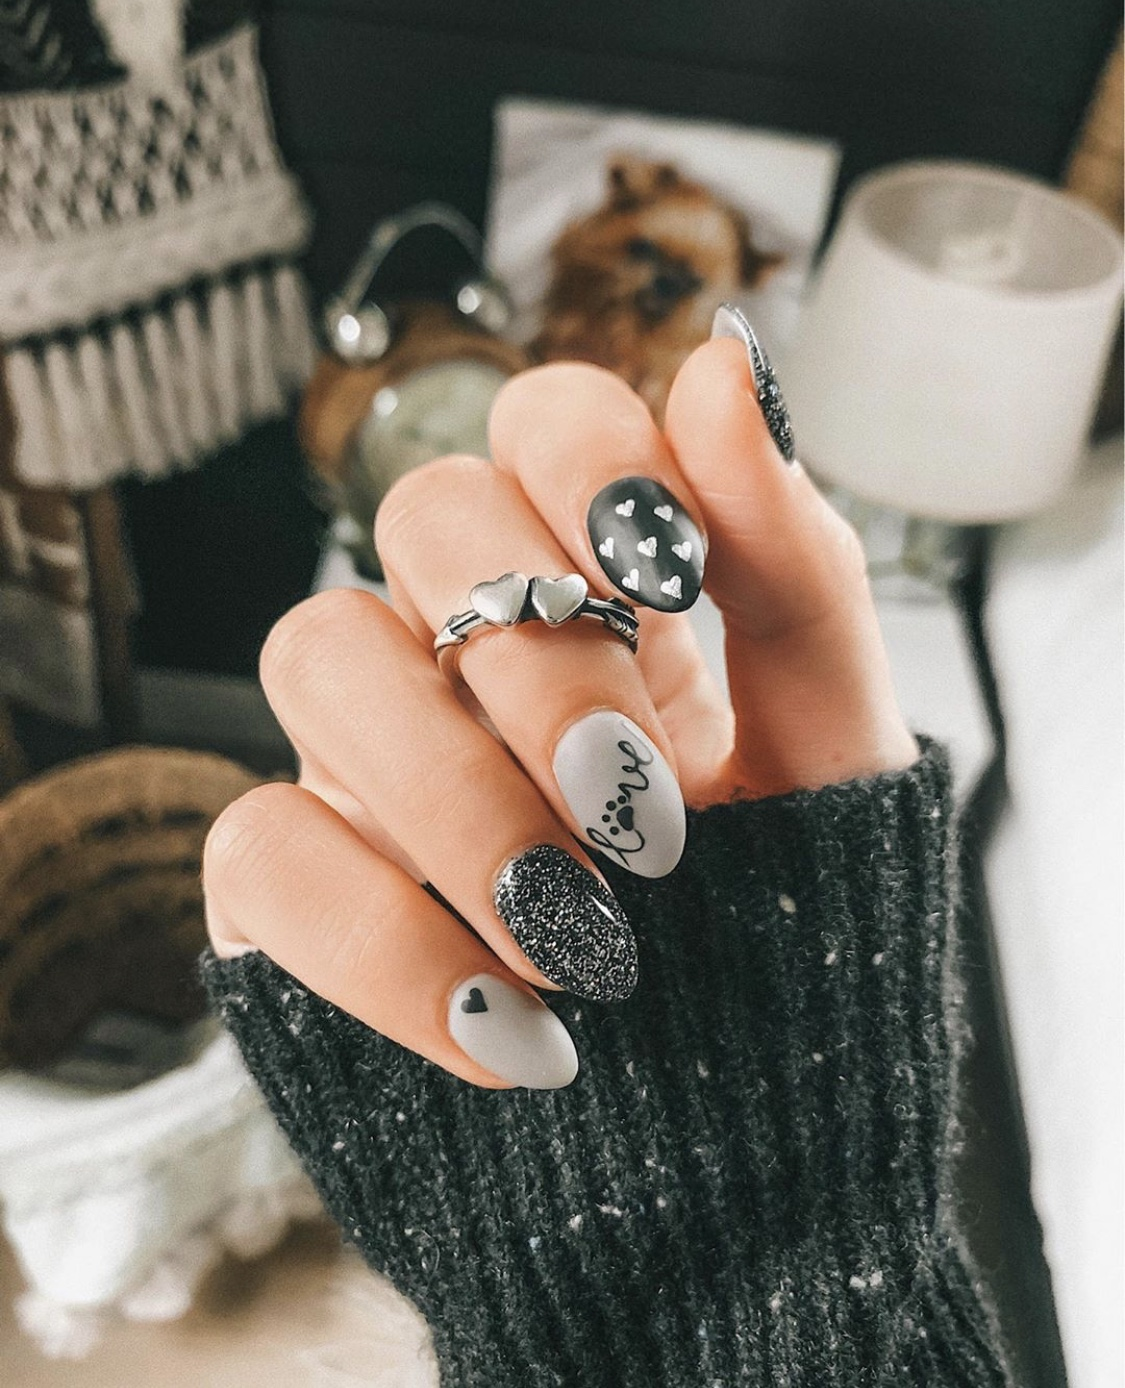 Nail Art Designs by popular Austin beauty blog, Dressed to Kill: image of a woman with black and grey animal nail art and wearing a James Avery silver heart ring.